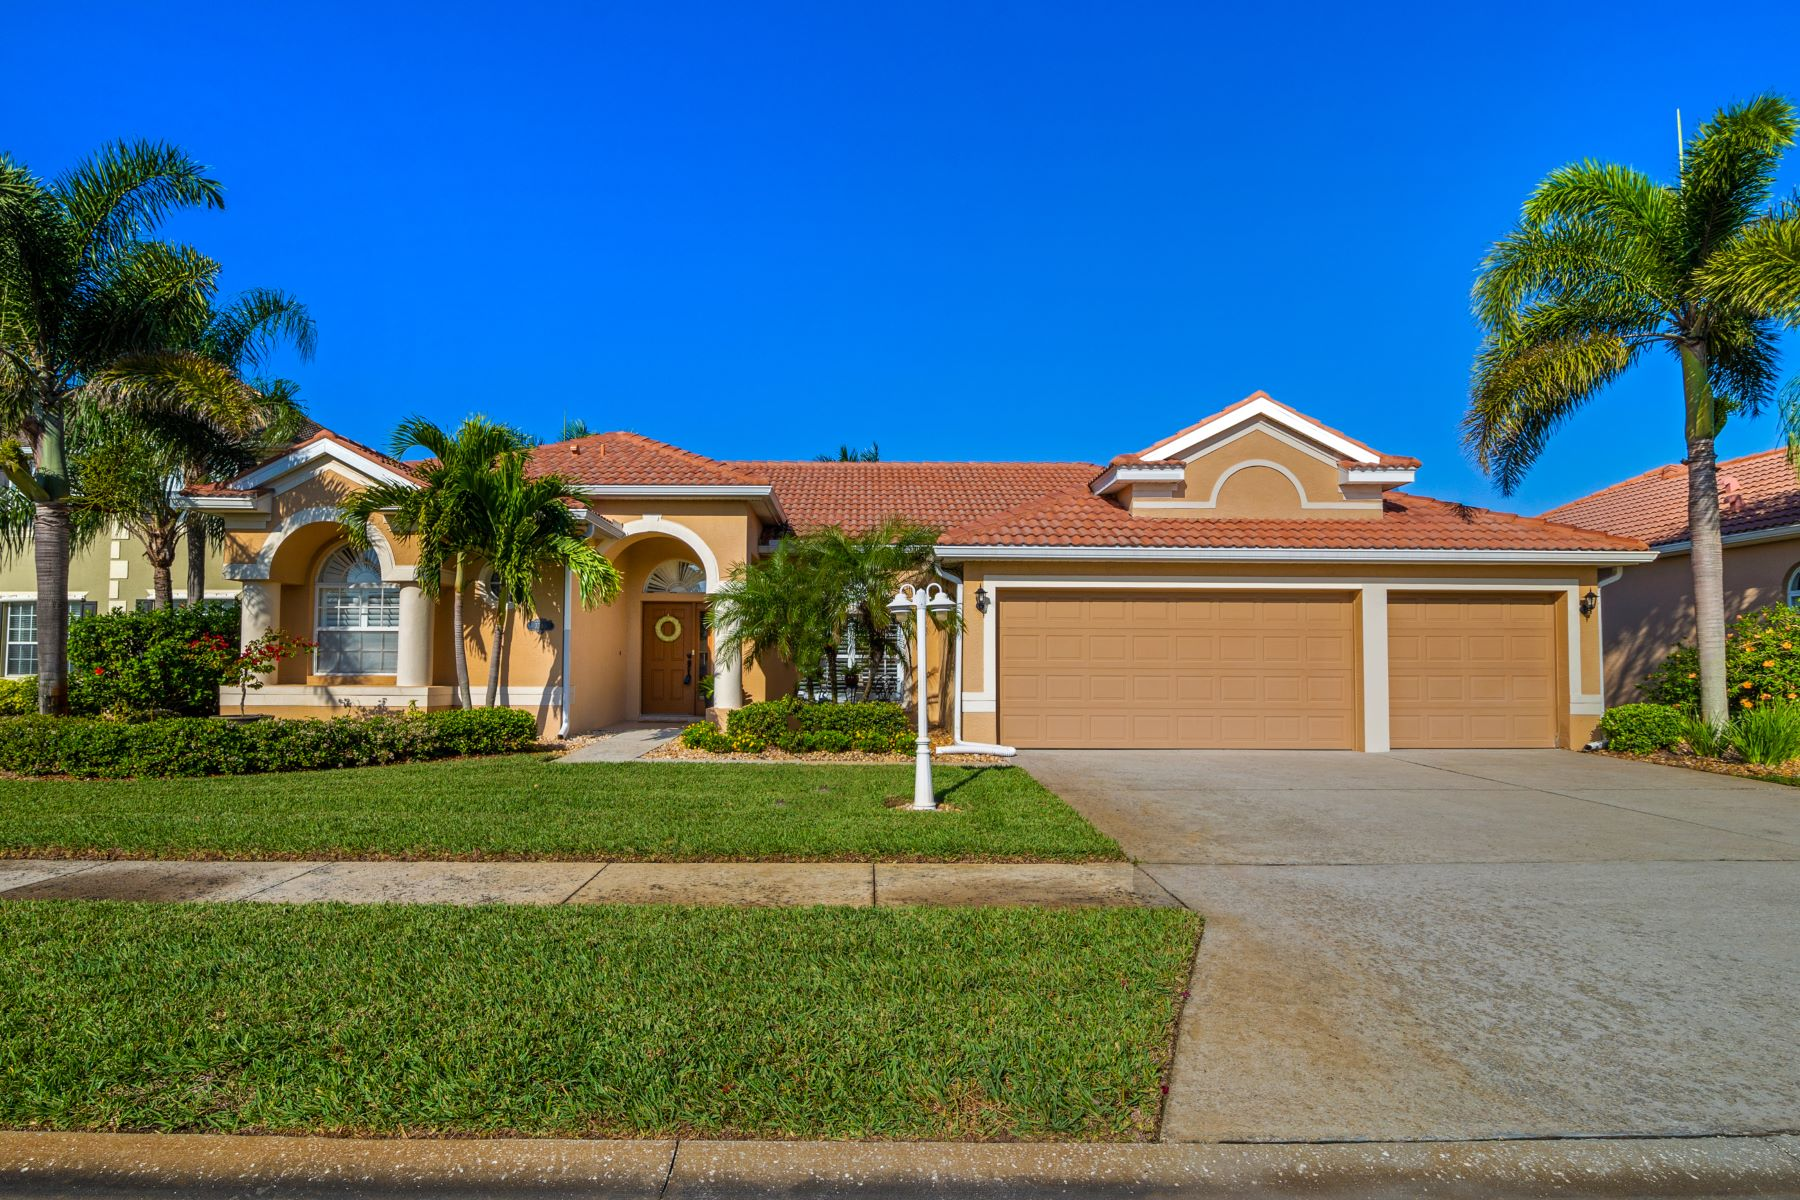 Single Family Home for Sale at Modern Home in Ocean Side Village 3340 Posiedon Way Melbourne, Florida 32903 United States